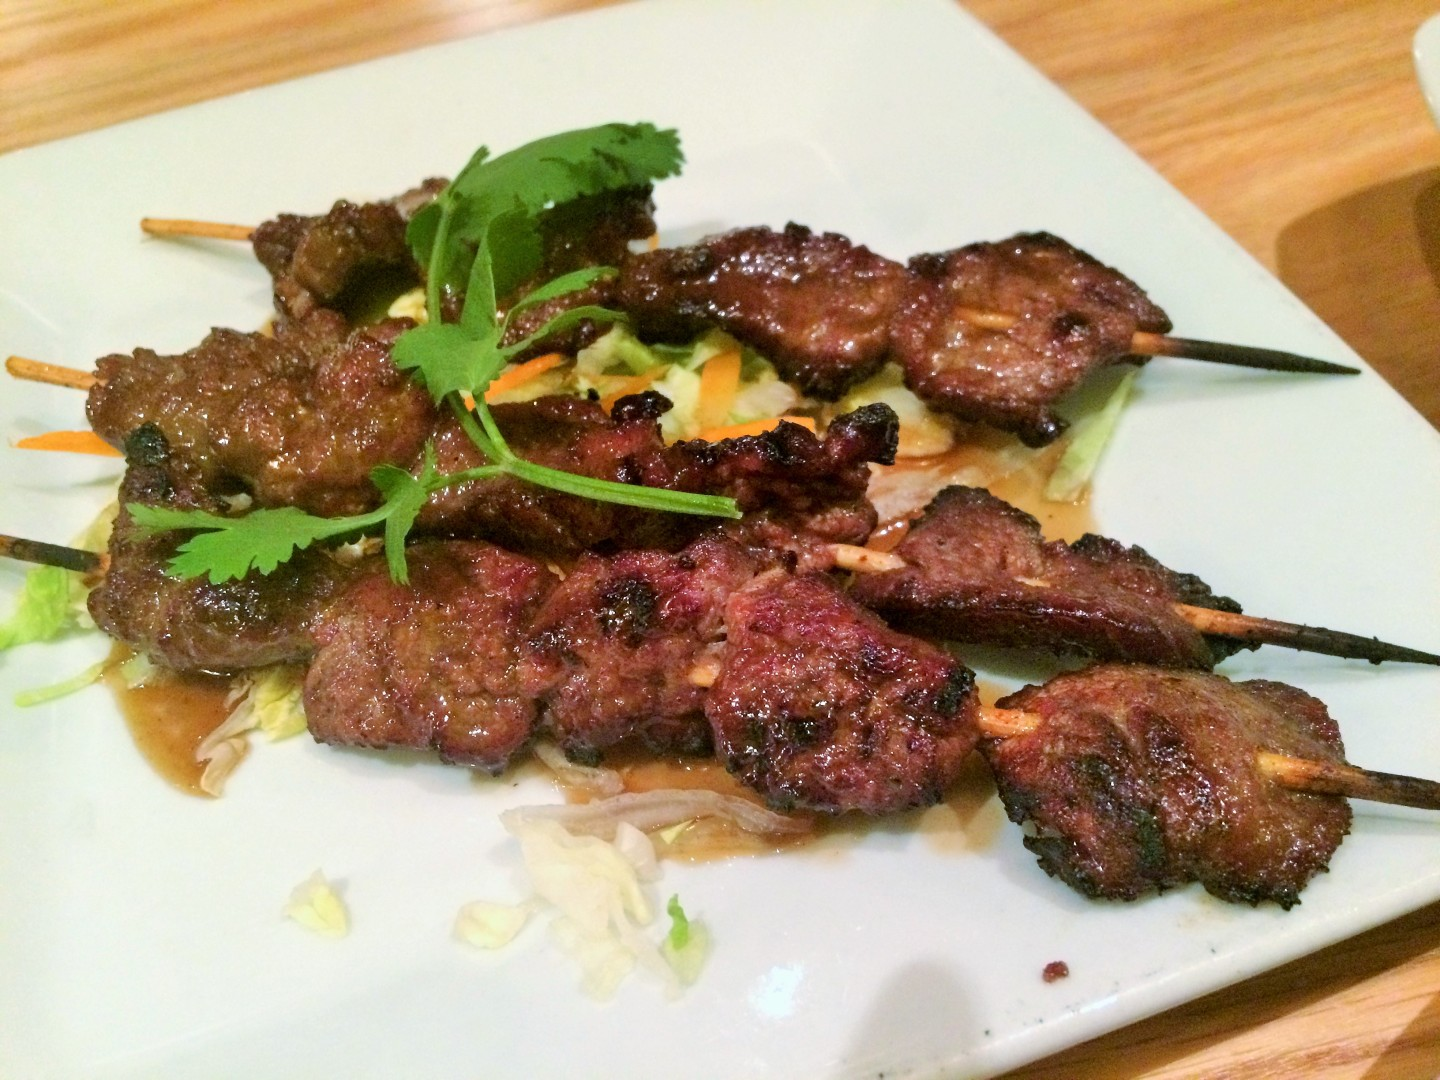 Korean bulgogi beef skewers at Mamak, a restaurant featuring Asian street food. Why is Mamak so much like Hawkers?